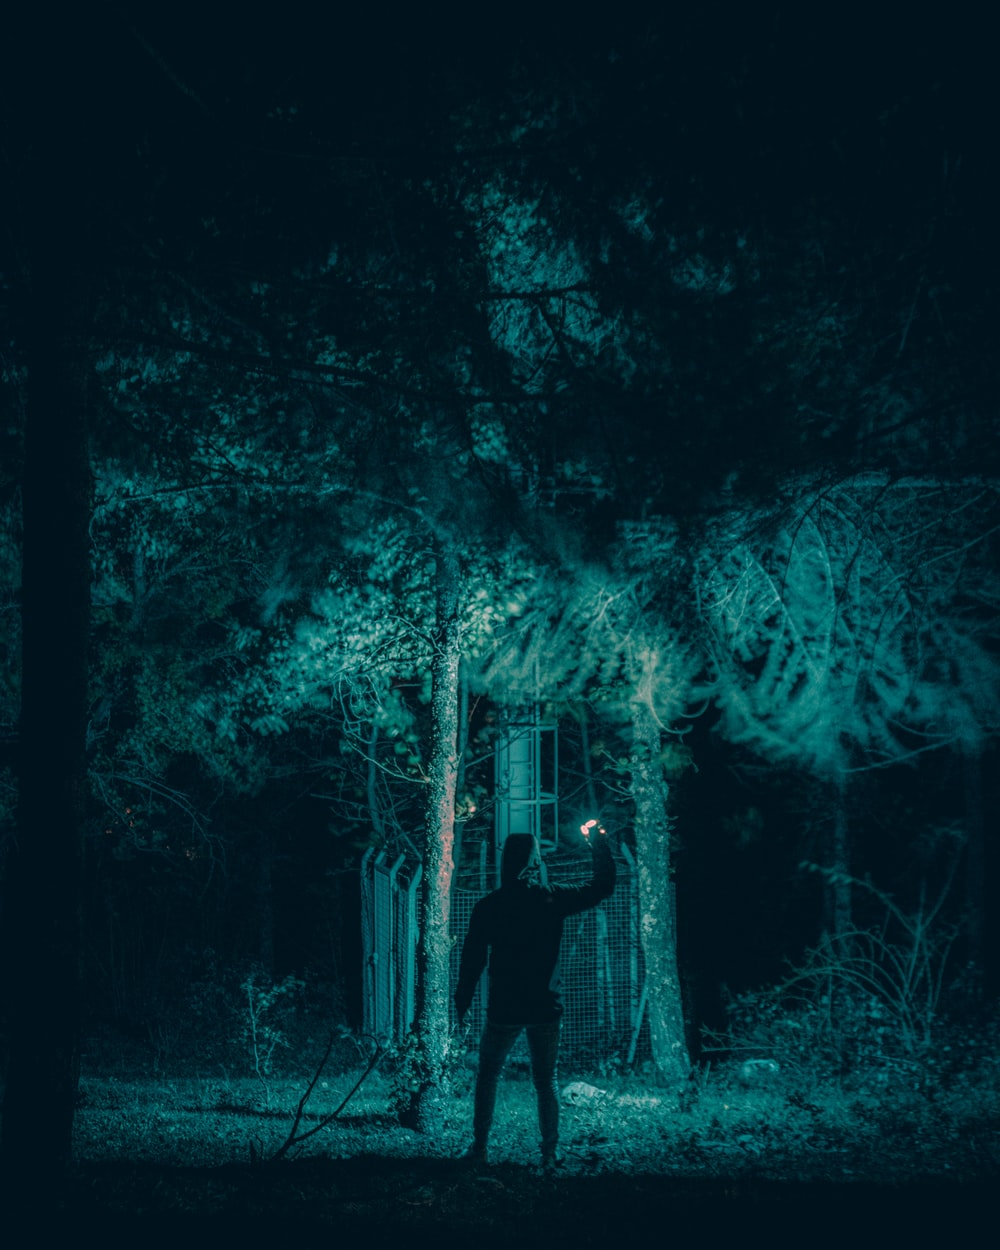 man in black jacket standing in forest